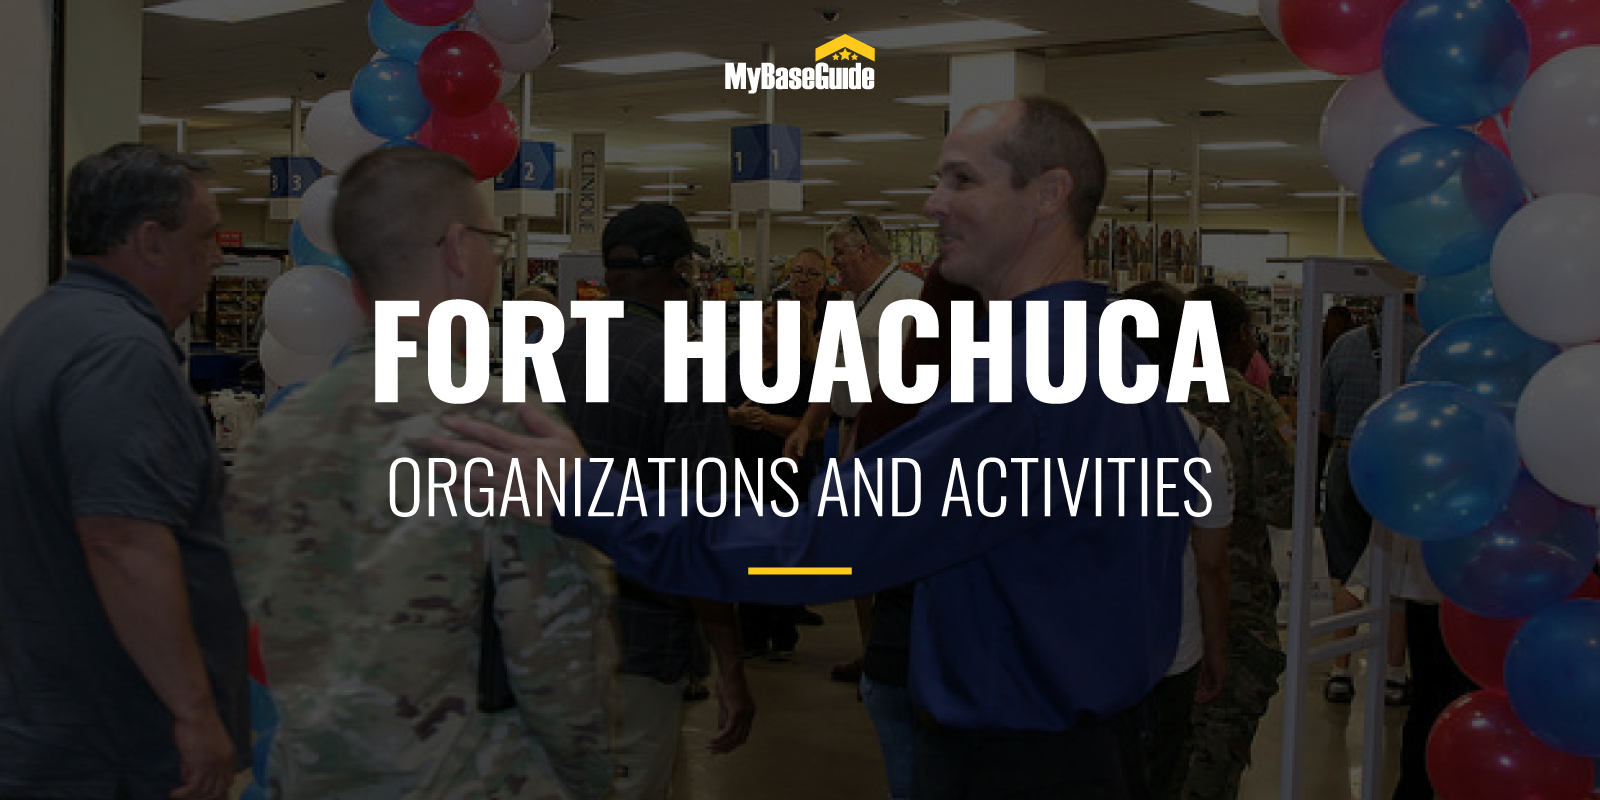 Fort Huachuca Organizations and Activities